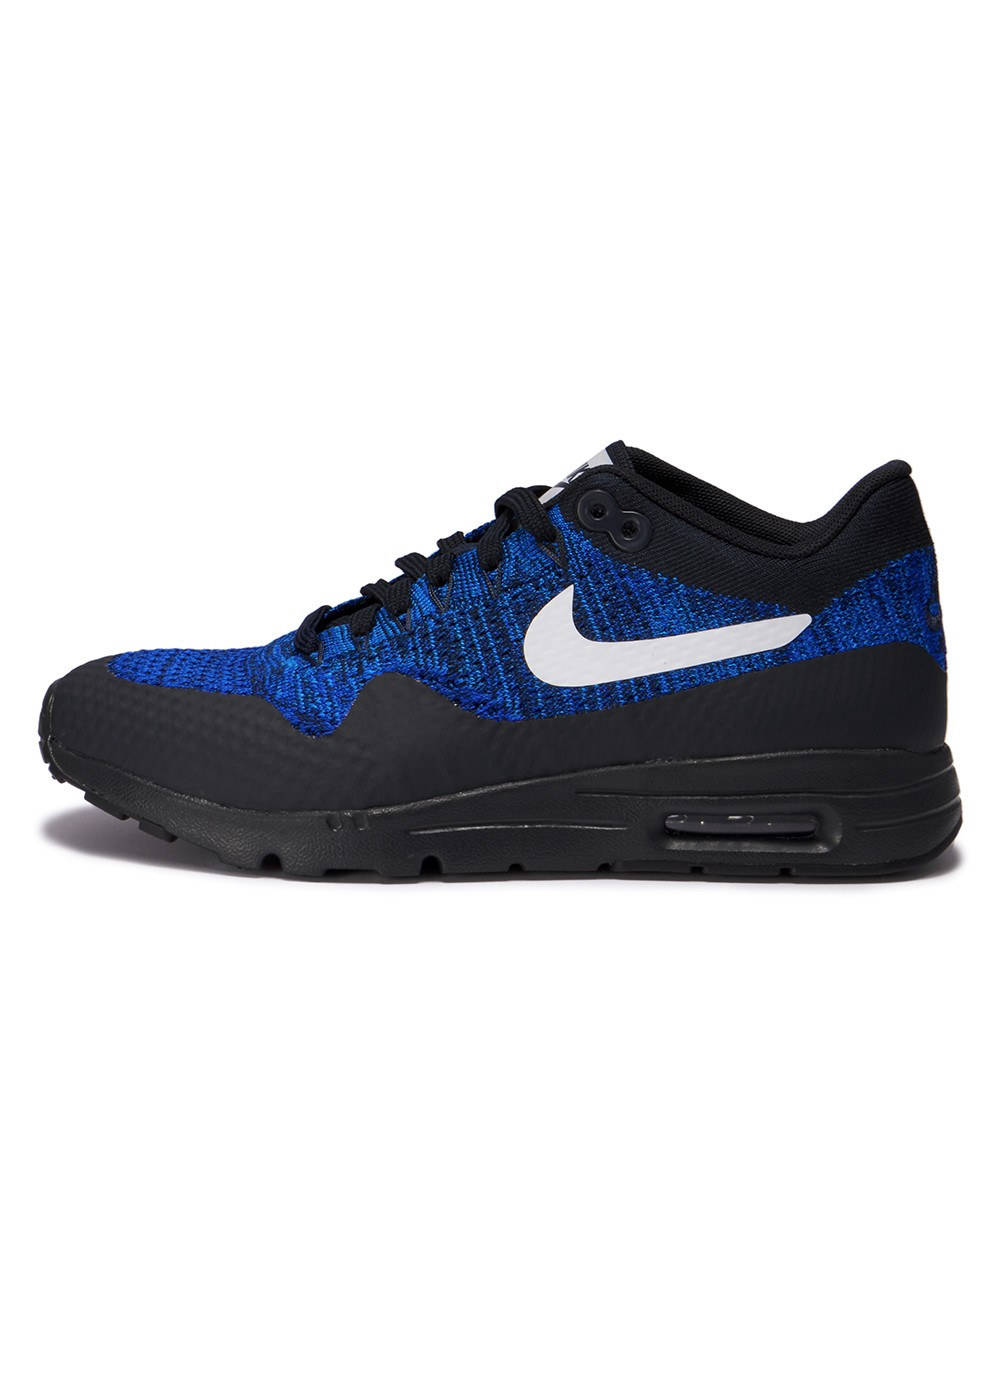 WMNS AIR MAX 1 ULTRA FLYKNIT 843387-401【NIKE】|BLUE|スニーカー|Styles